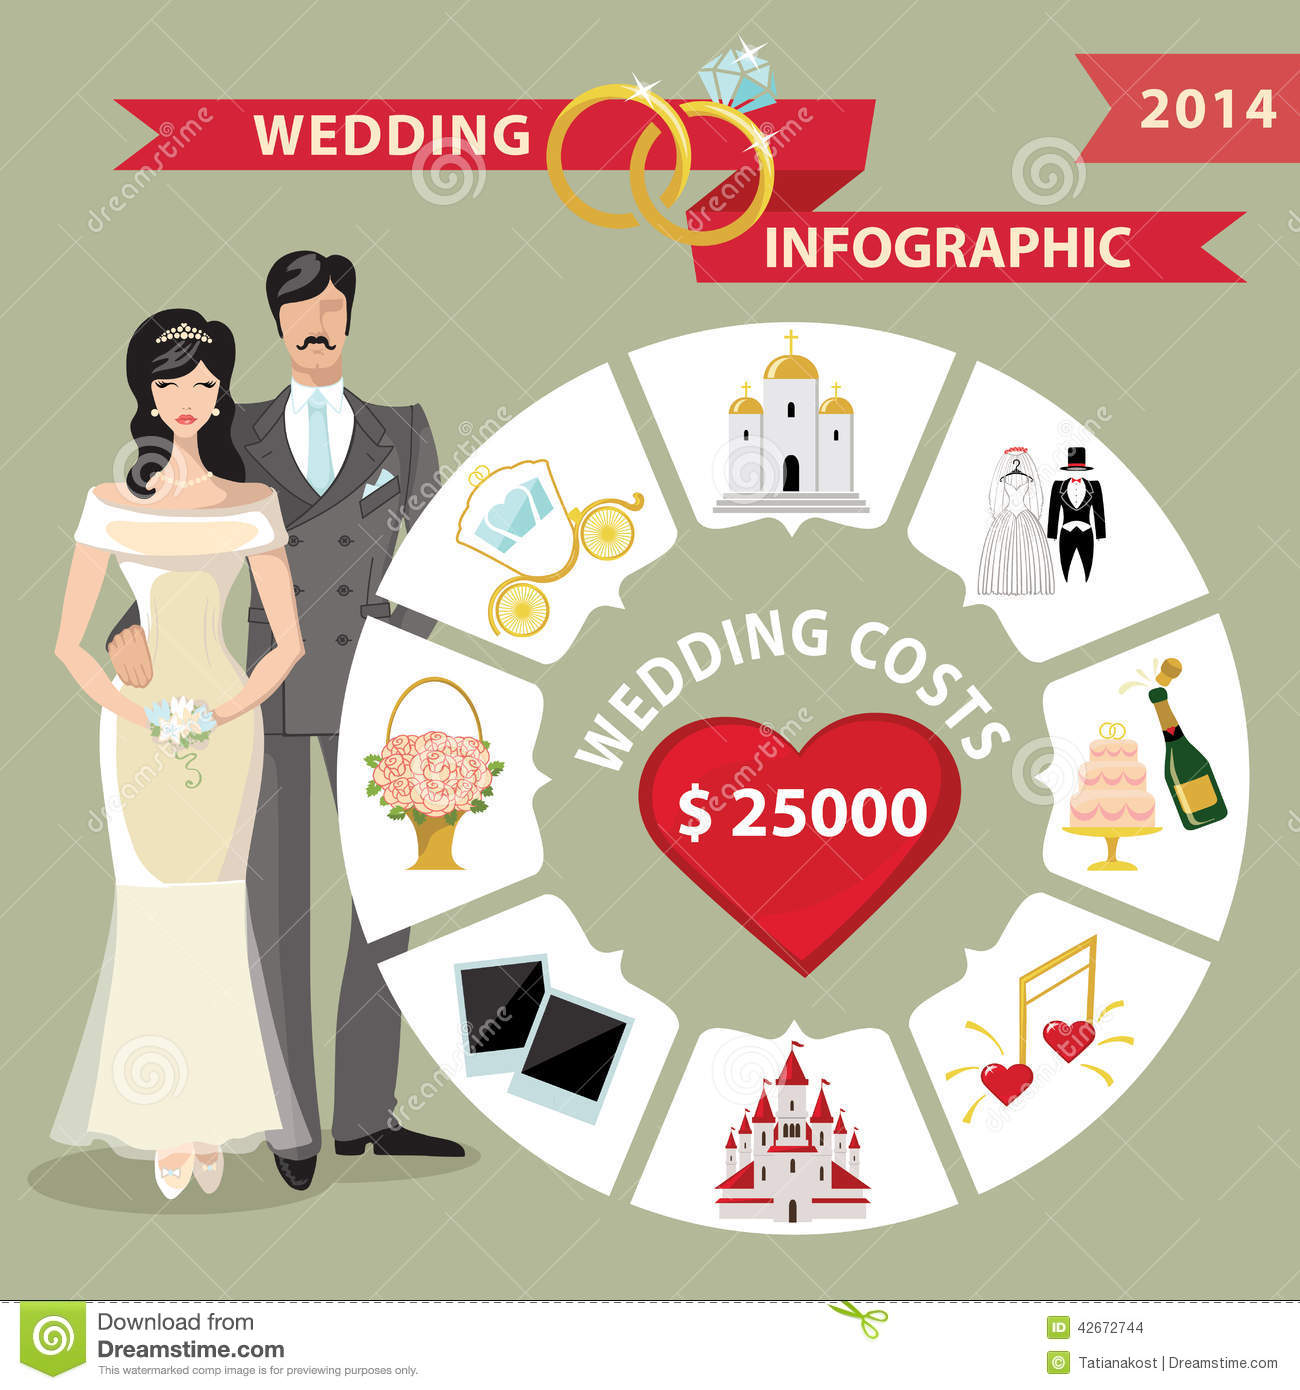 wedding infographic with circle business concepts bride groom stock